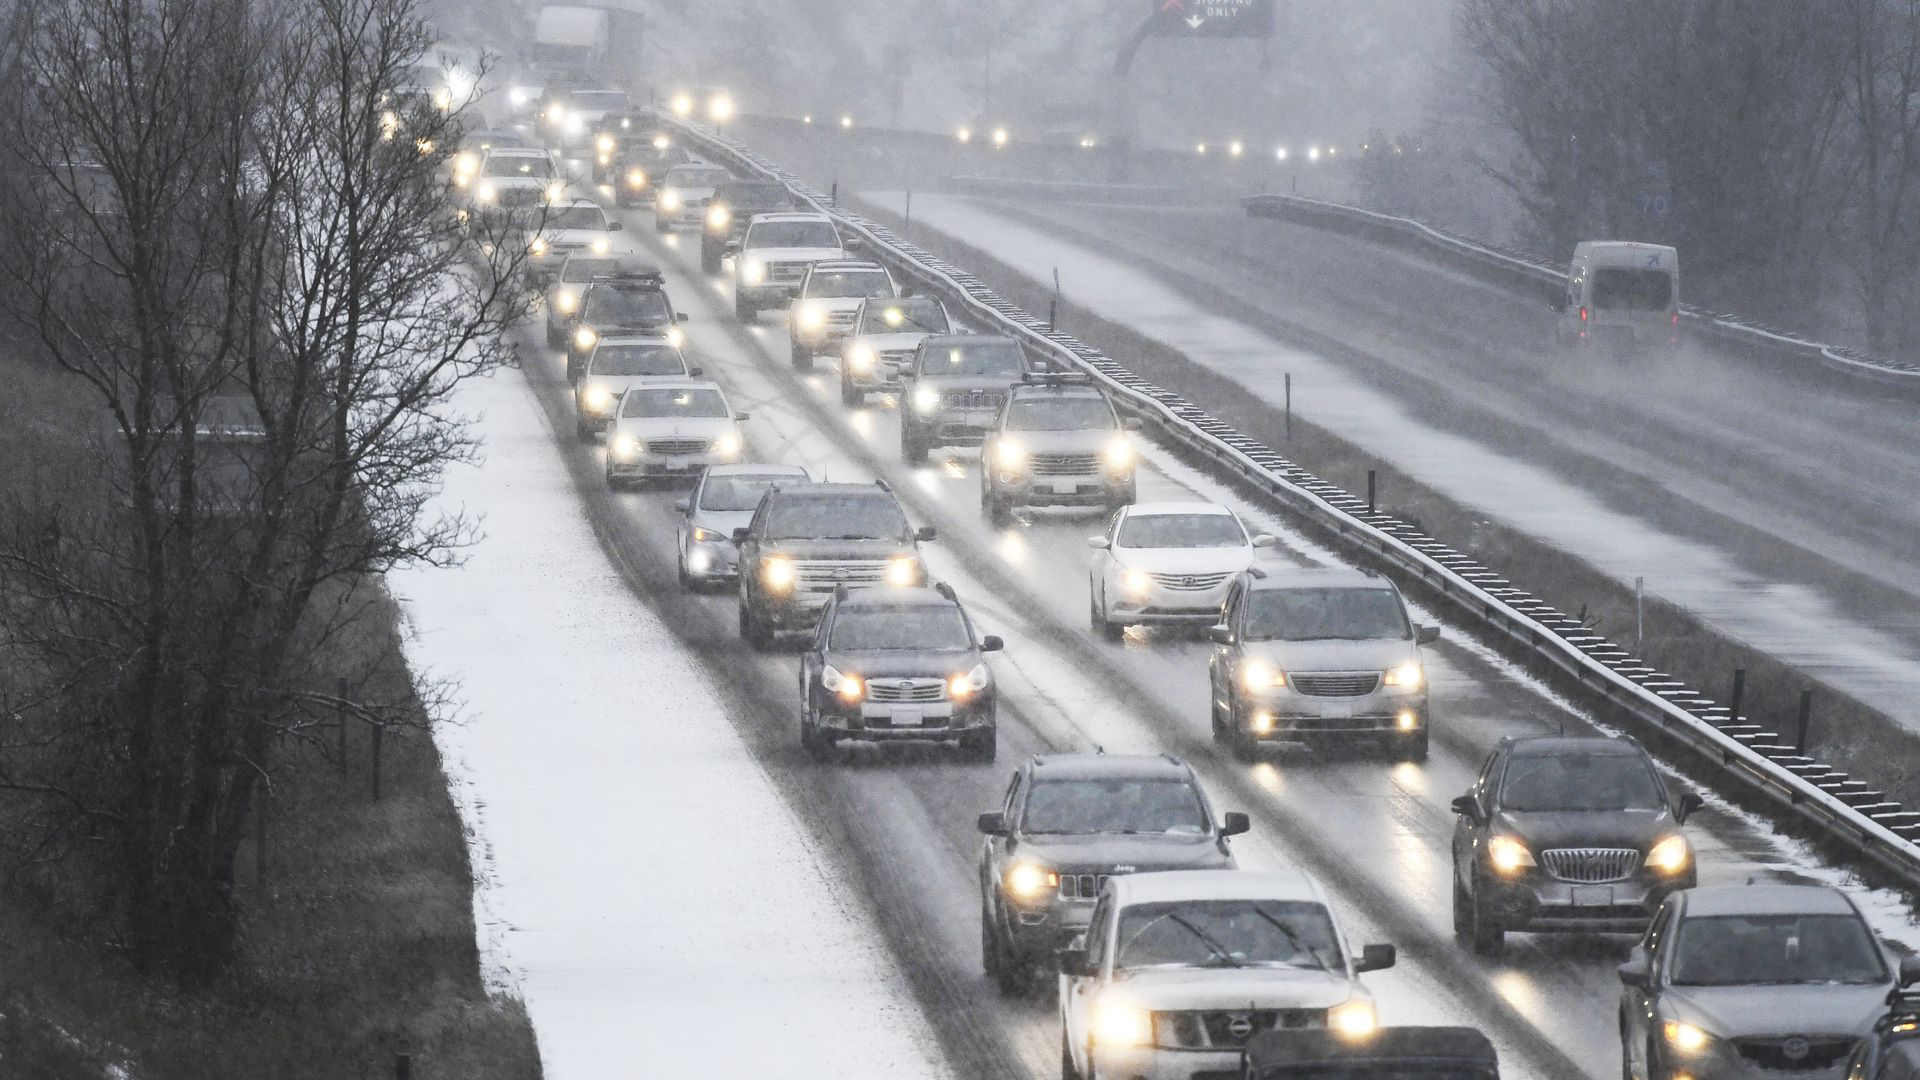 Cars are backed up on Interstate 70 in Colorado.